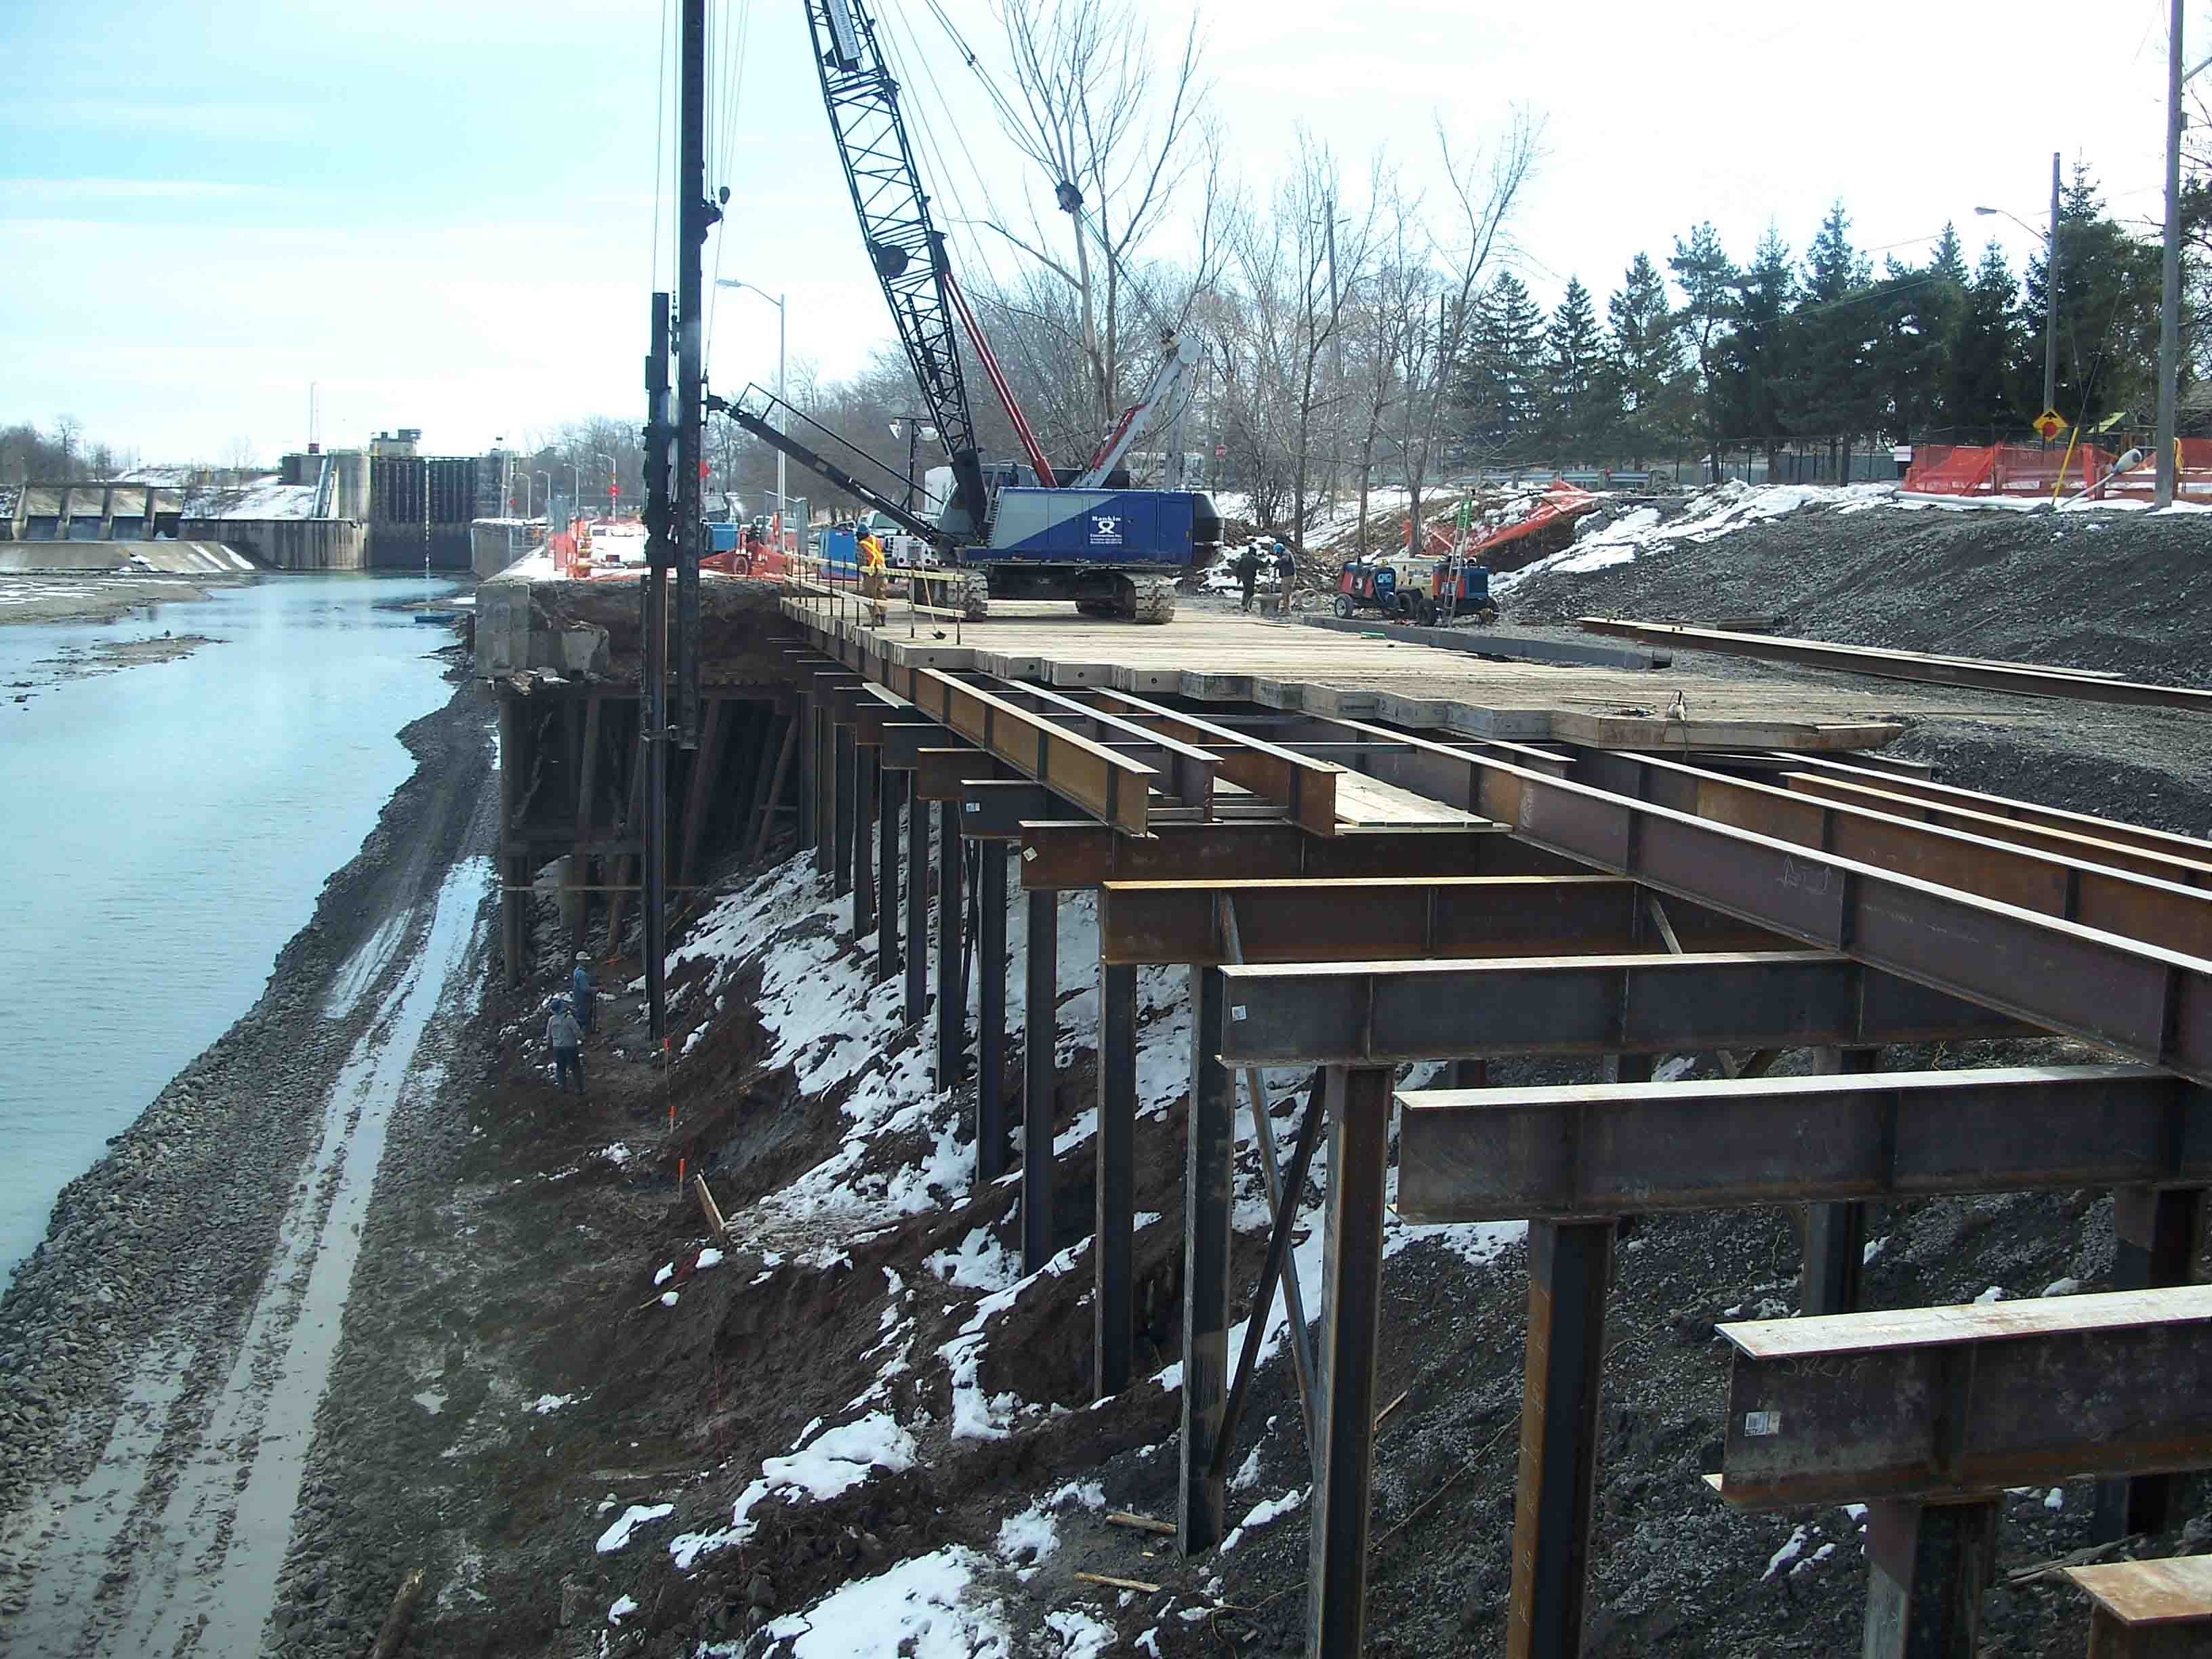 Welland Canal reach 1 tie up wall